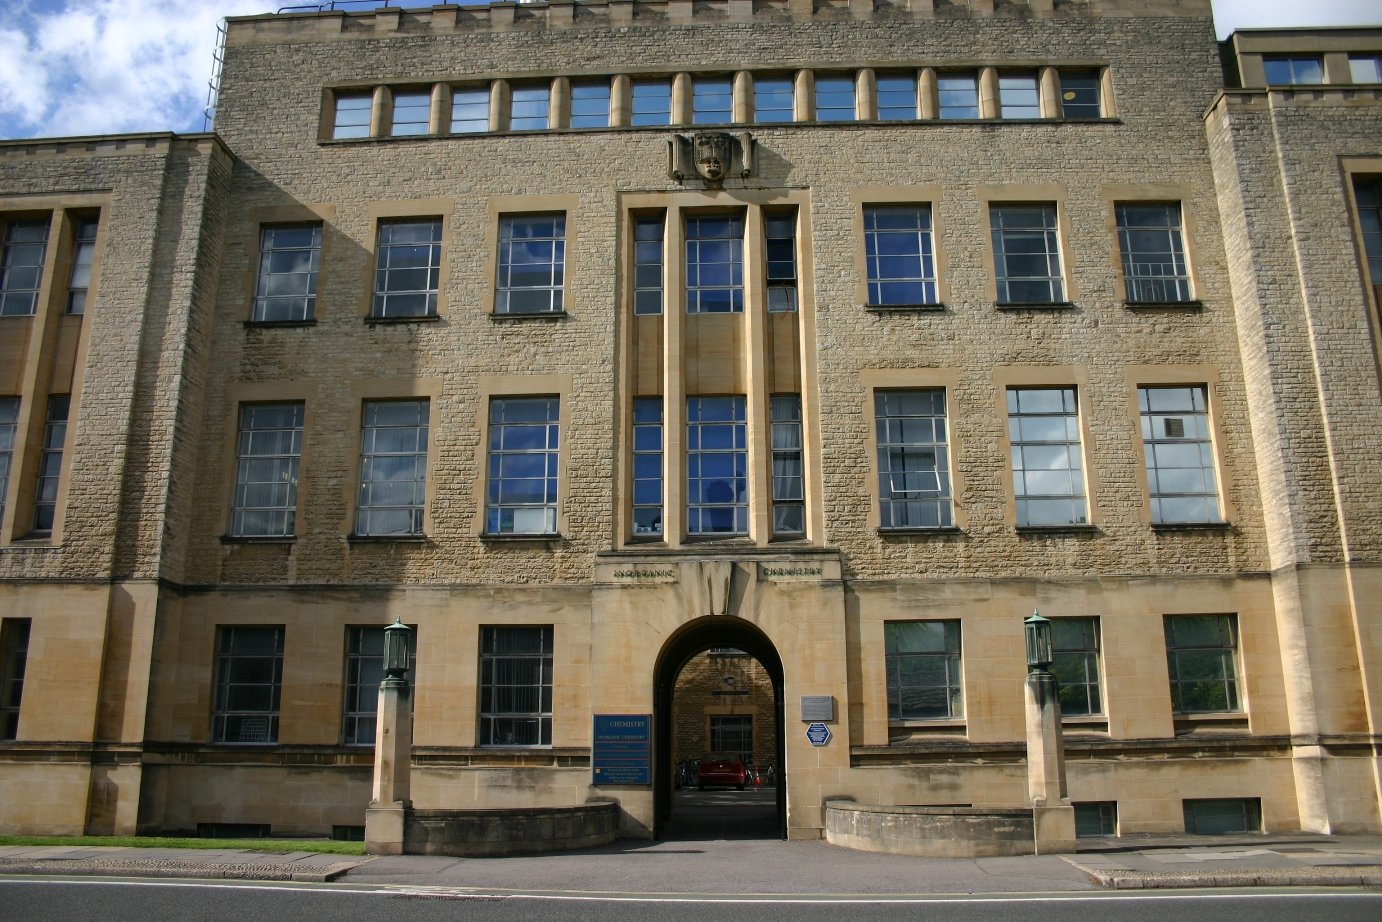 Inorganic Chemistry Laboratory, University of Oxford